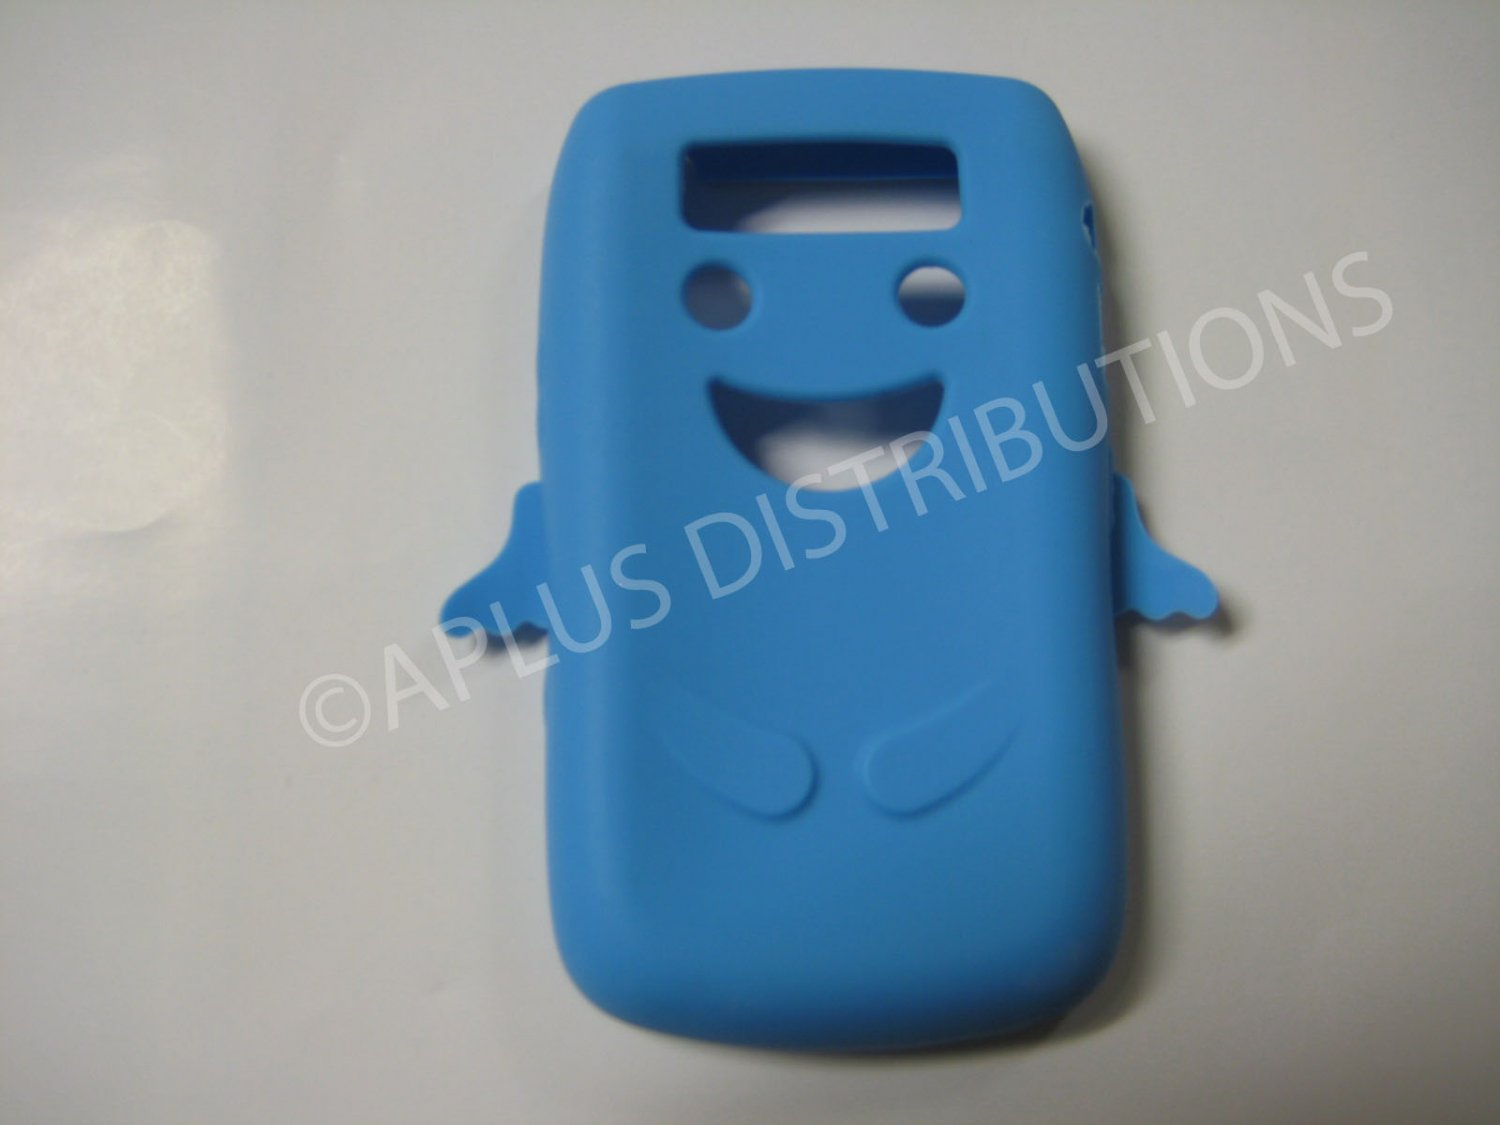 New Light Blue Angel Design Silicone Cover For Blackberry 9700 - (0184)